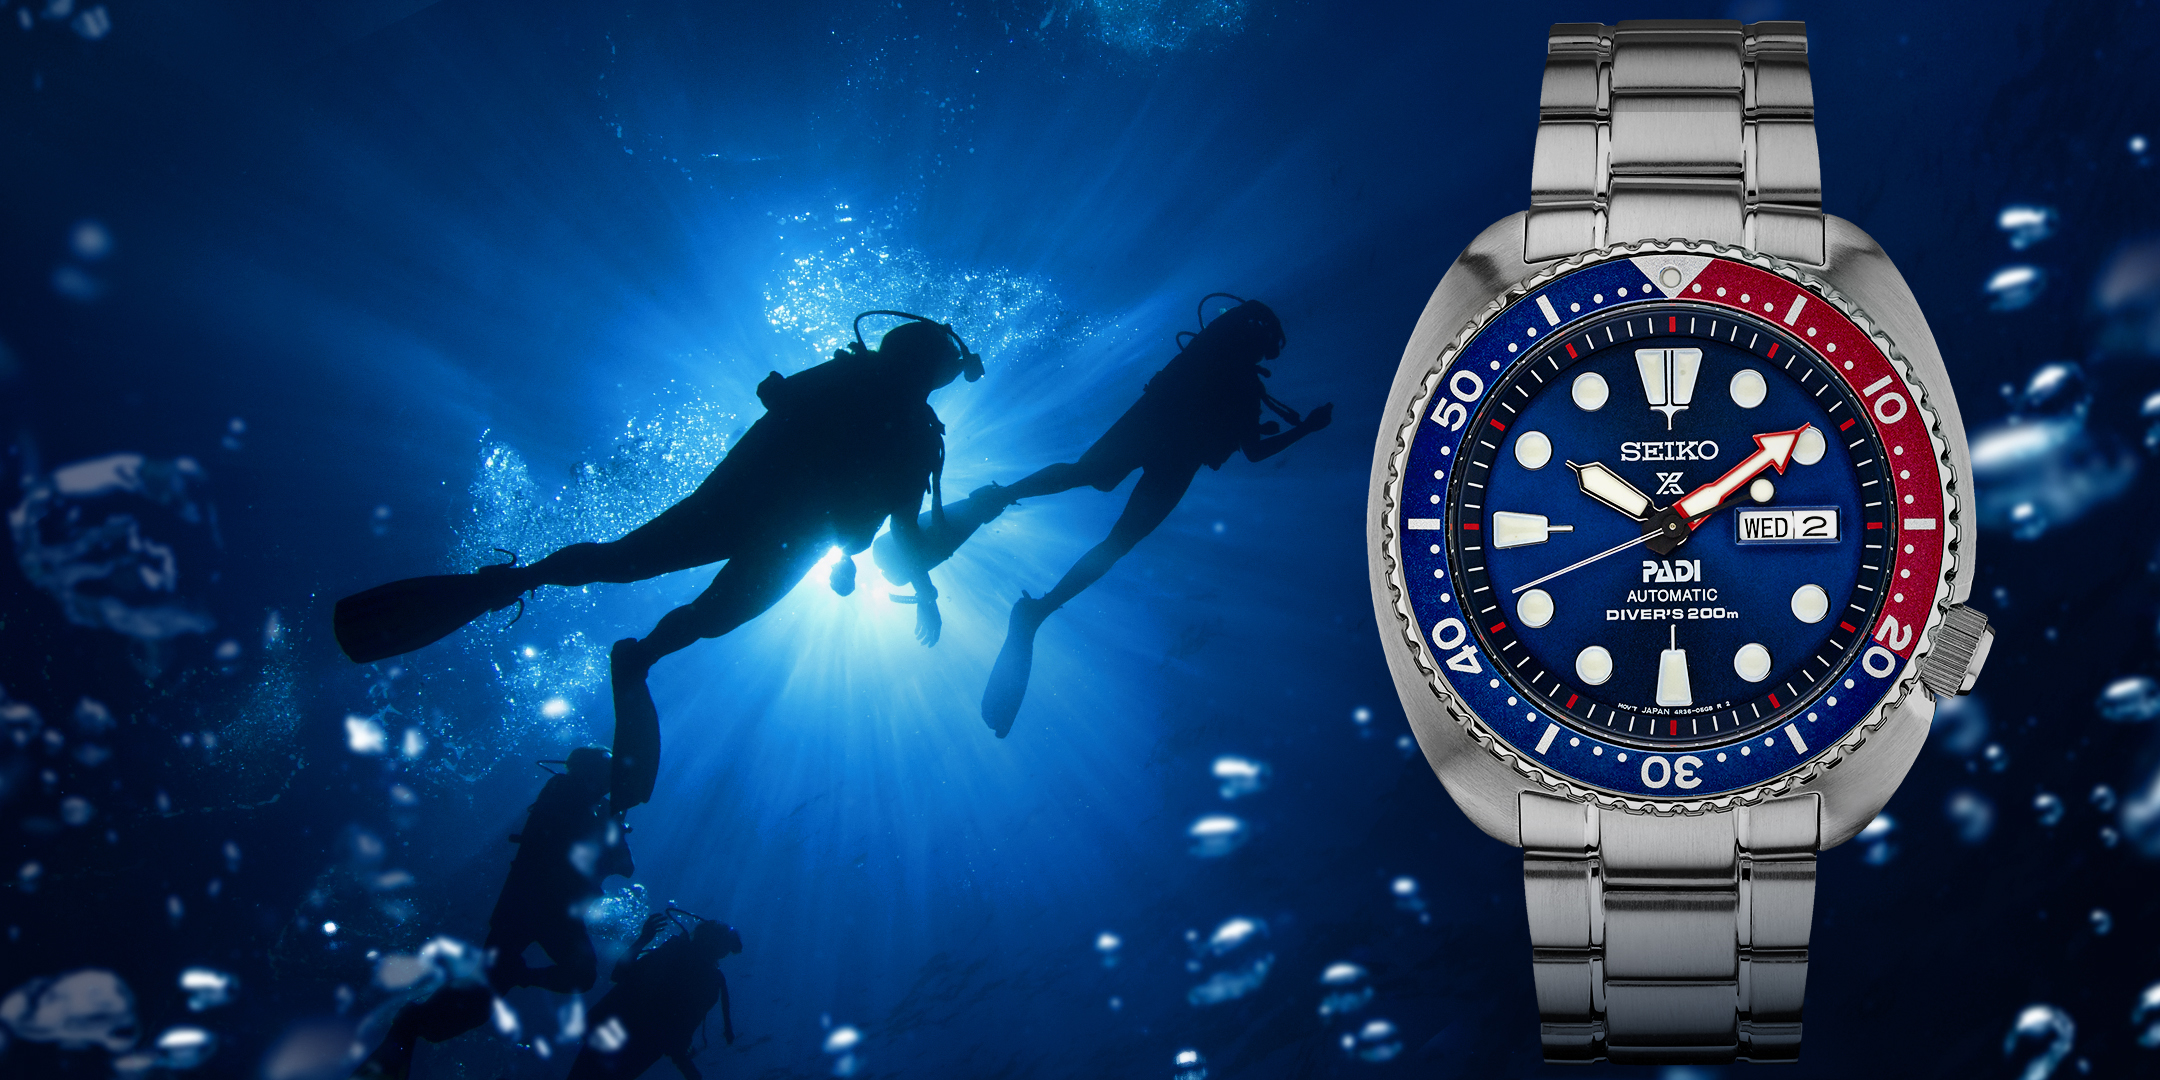 citizen aqualand com connection band en watch diving watches promaster quartz scuba rubber shop dive divers